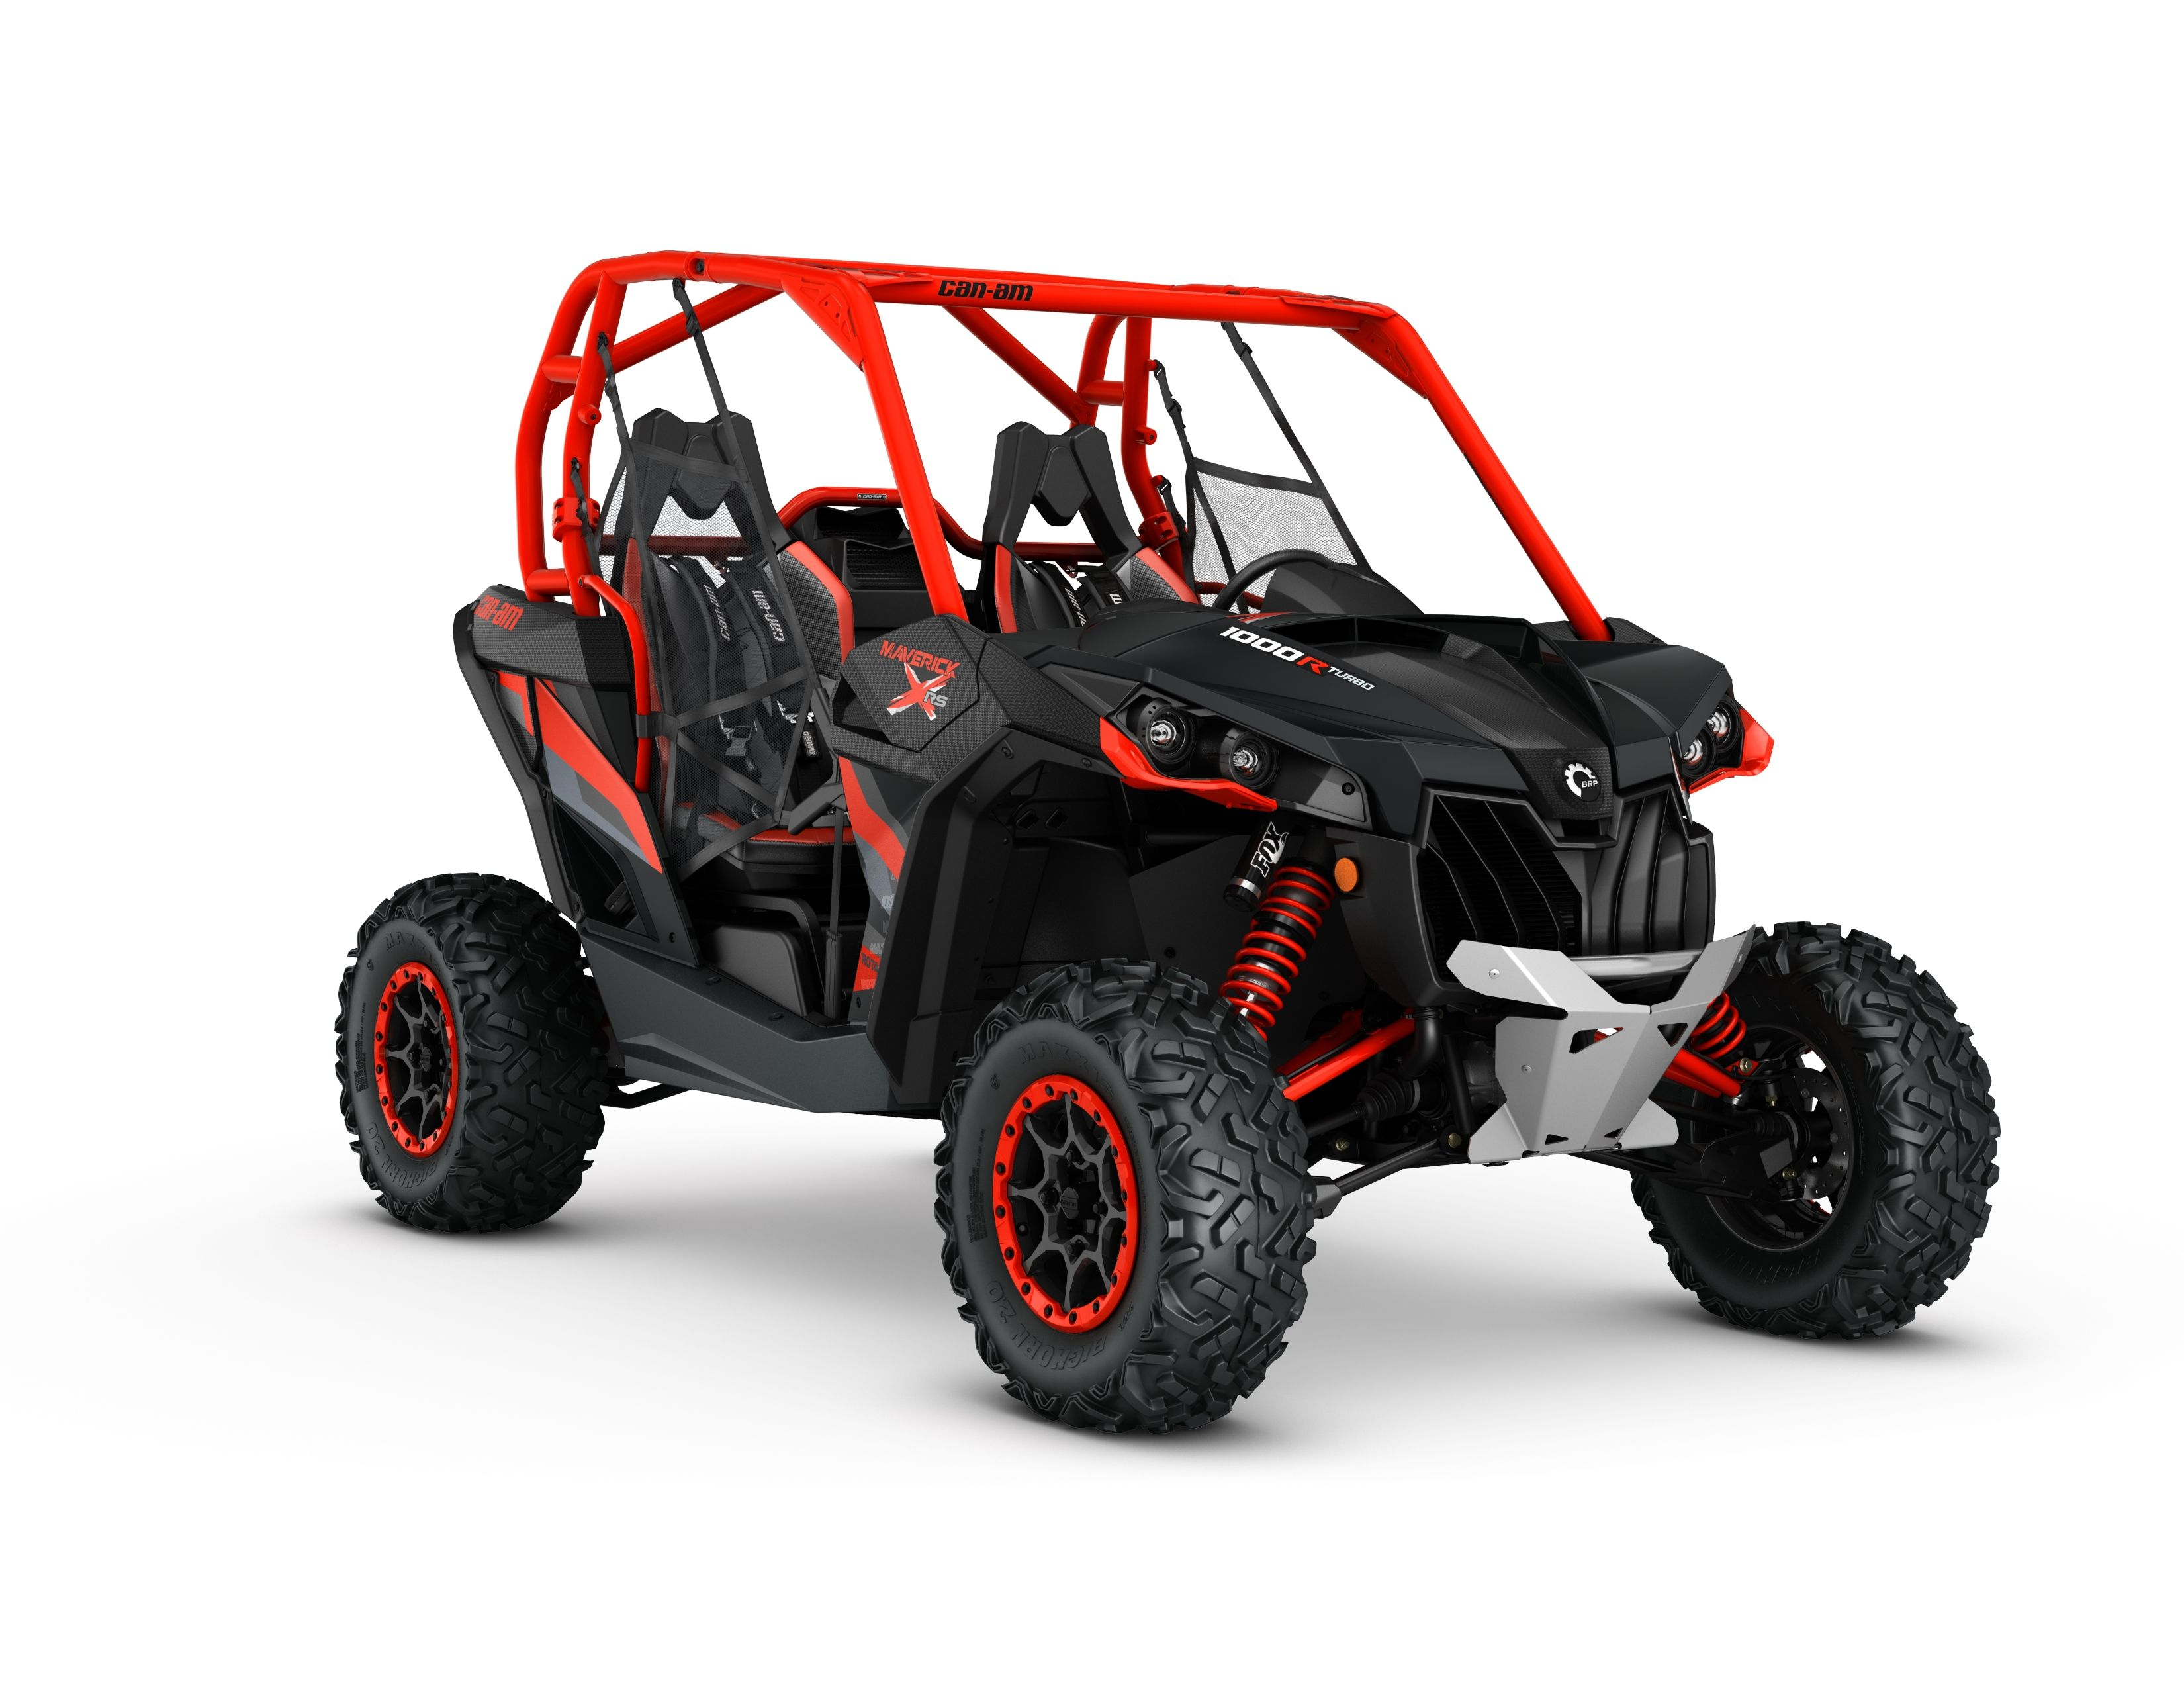 2016_maverick_x_rs_1000r_turbo_carbon_black_-_can-am_red_3-4_front.jpg (3300×2550)